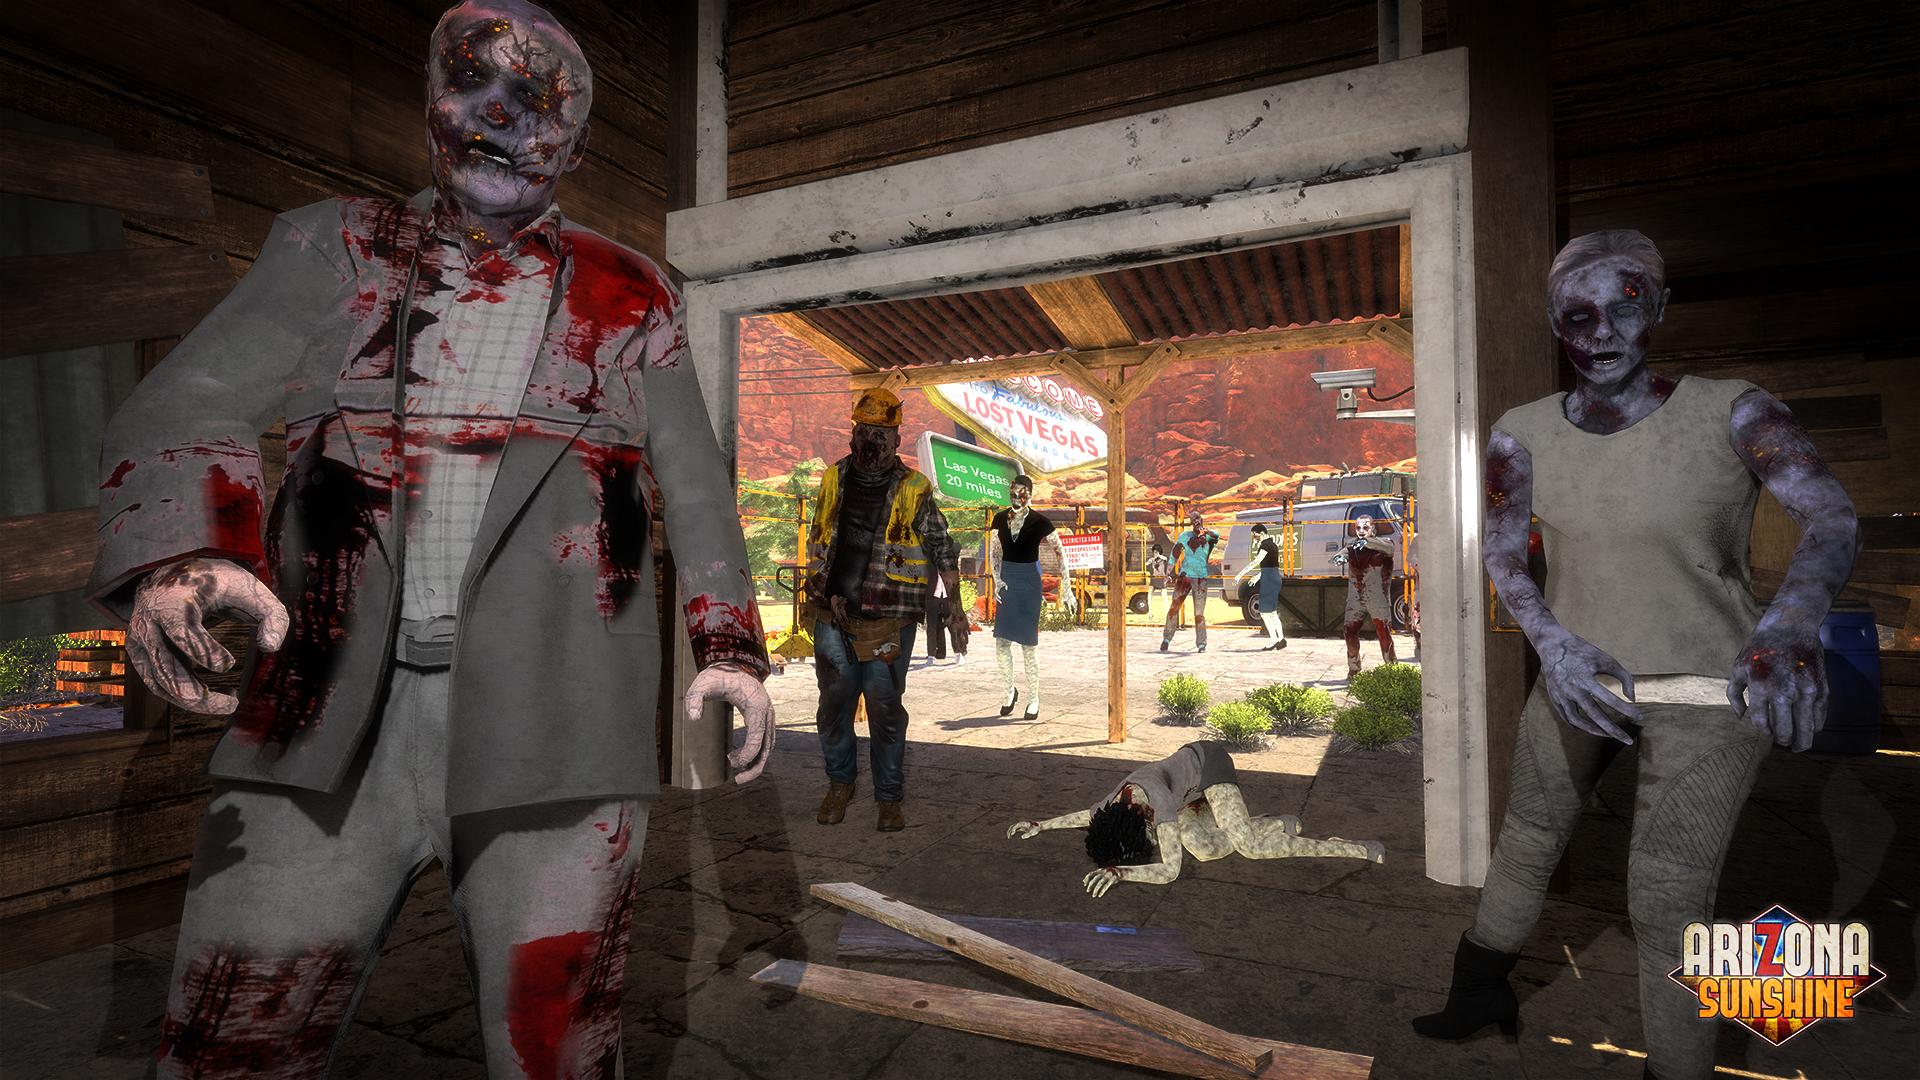 Arizona Sunshine Will Be Receiving A New Horde Map for Its Zombie Apocalypse Experience